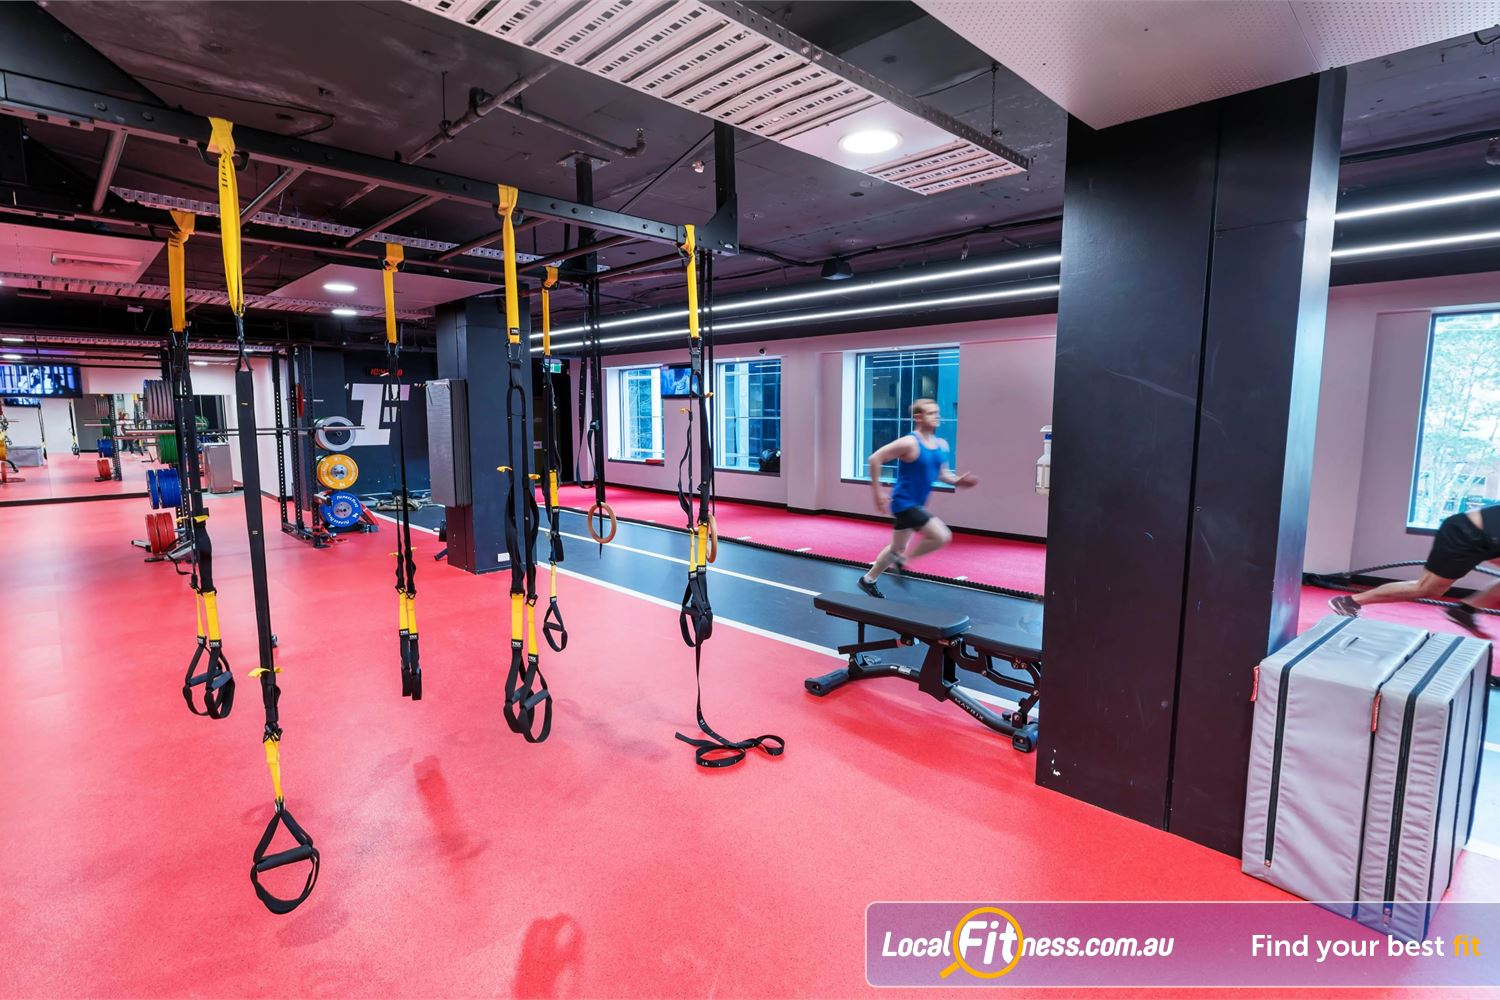 Fitness First Elizabeth Plaza Near Milsons Point Work your core with TRX training on test your sprints on our sprint track.